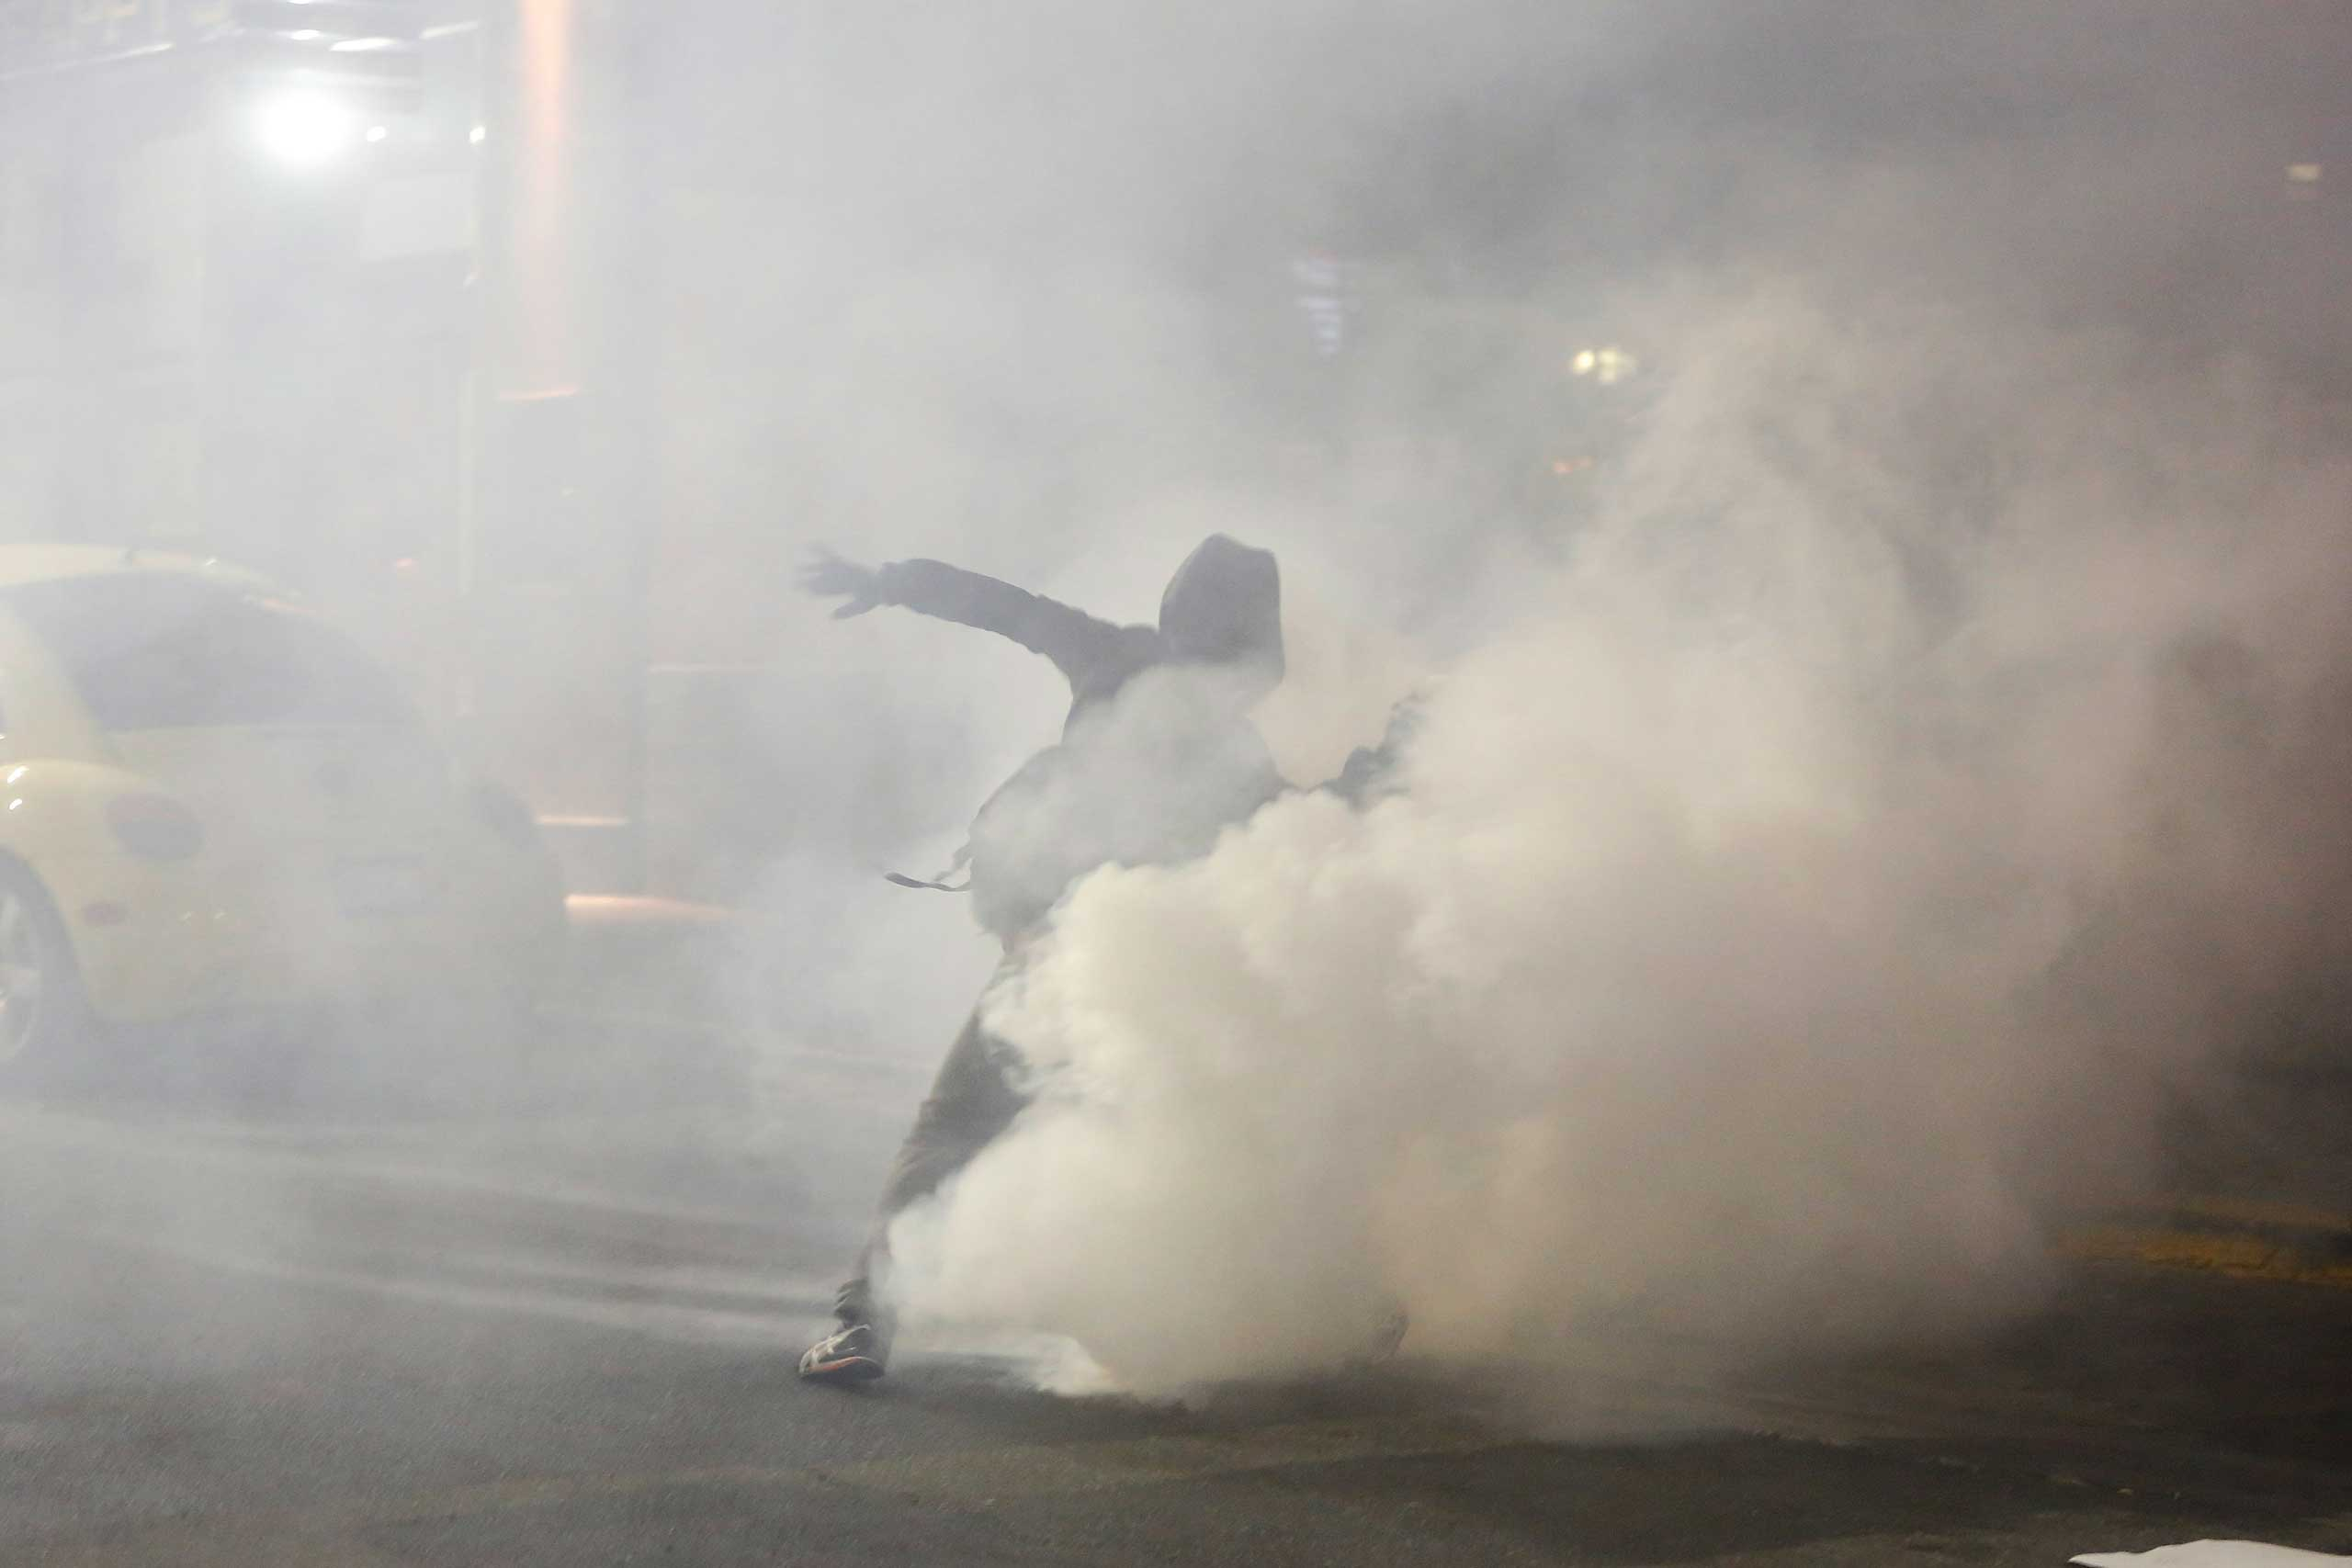 A demonstrator throws back a teargas canister toward the police line during the fourth night of demonstrations in Berkeley, Calif., Dec. 6, 2014.